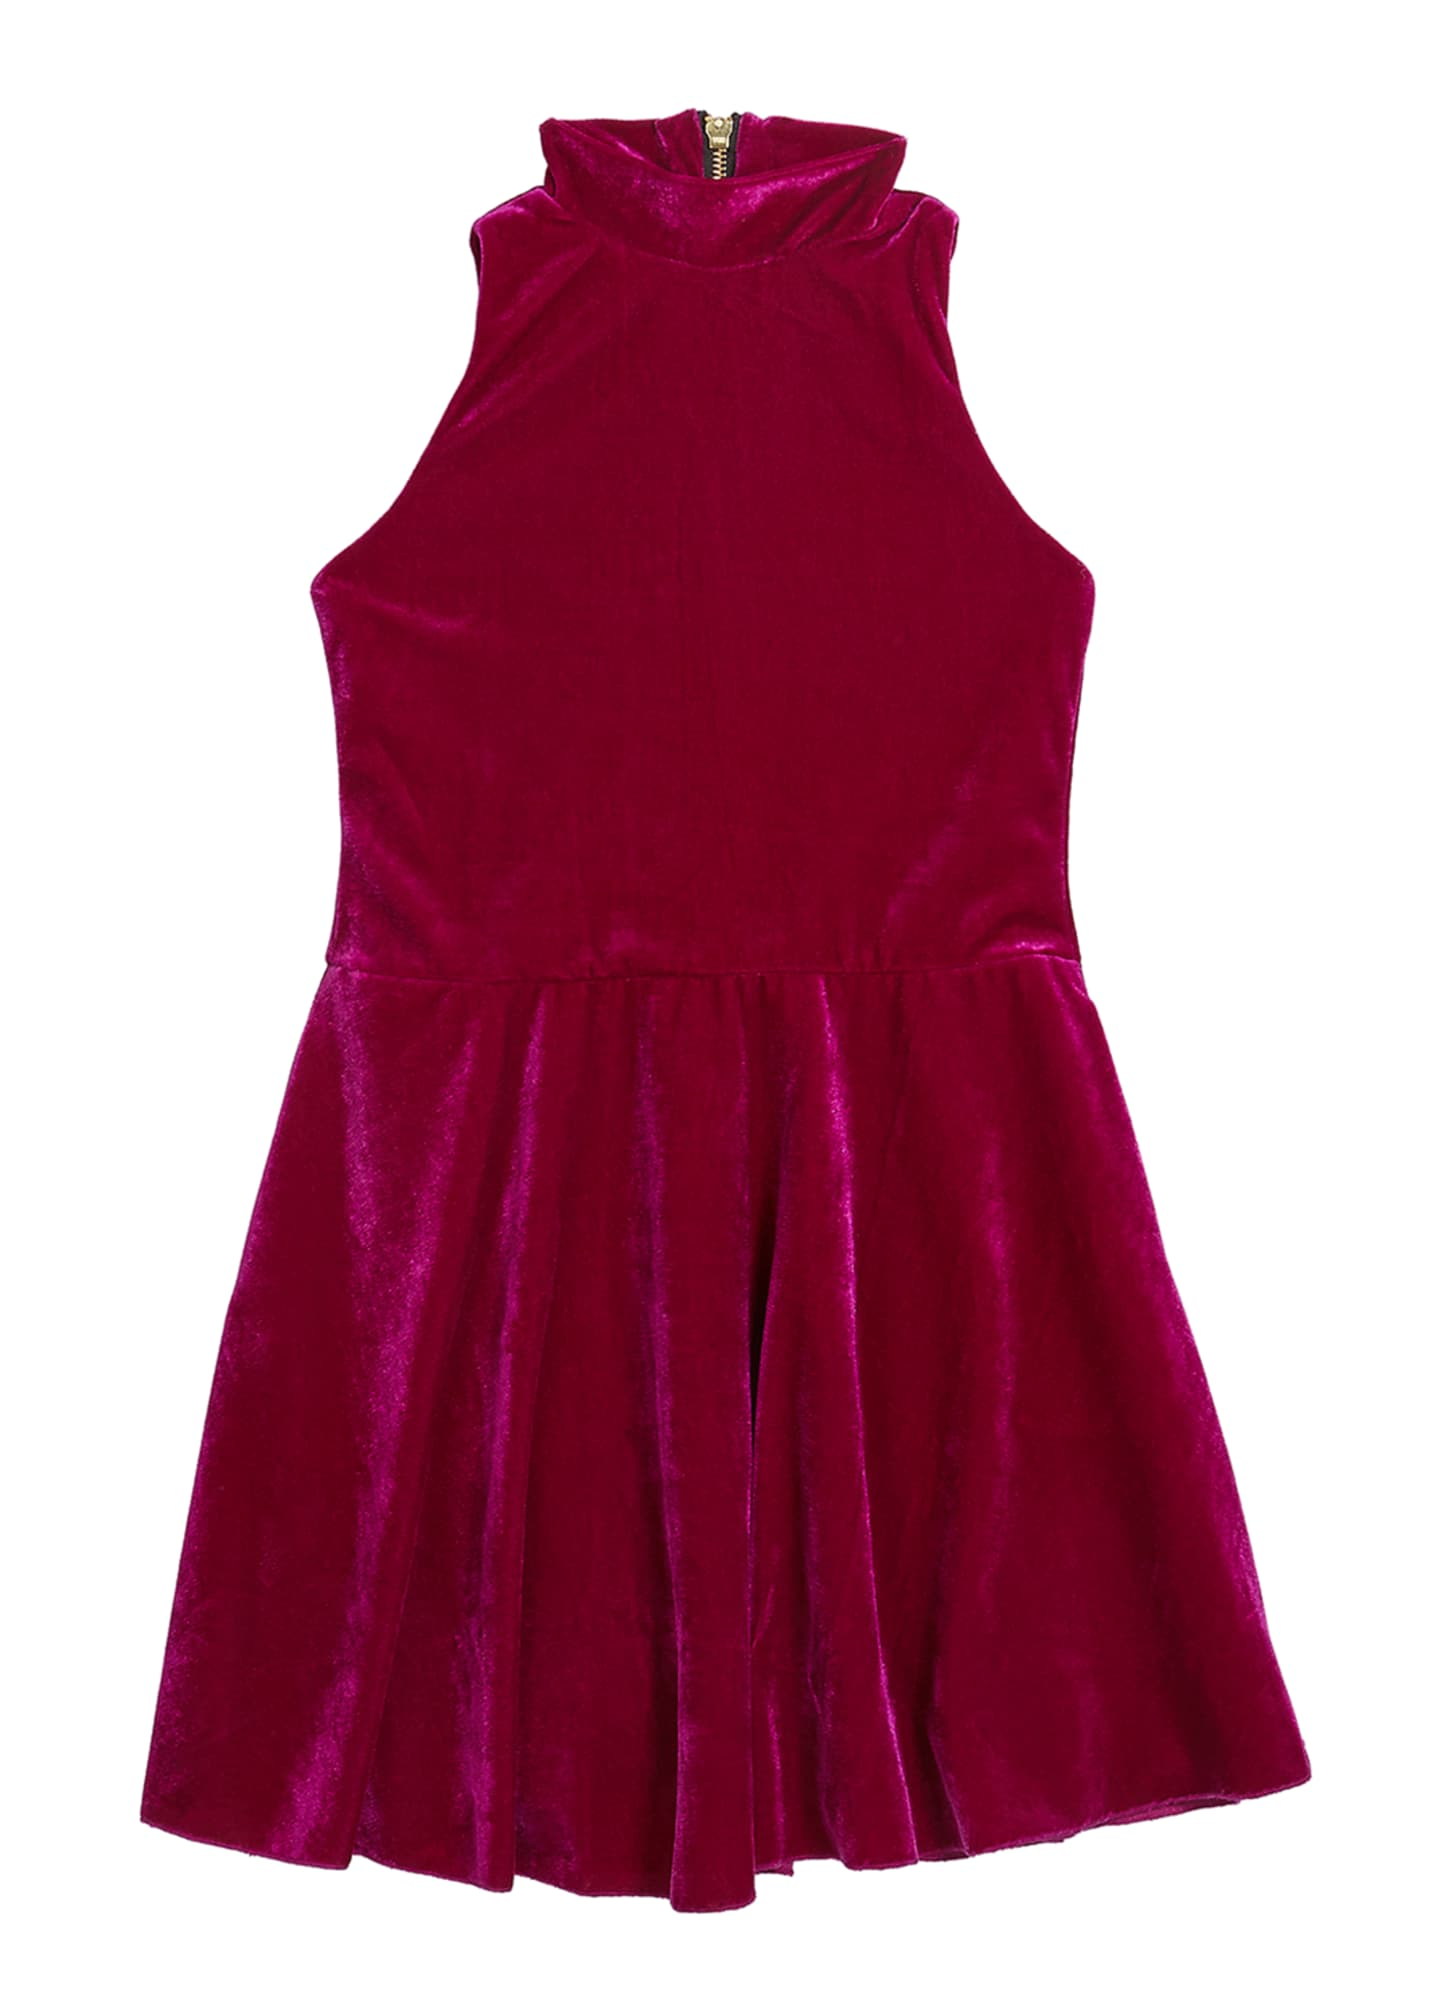 Zoe Girl's Nicole Velvet Halter-Neck Swing Dress, Size